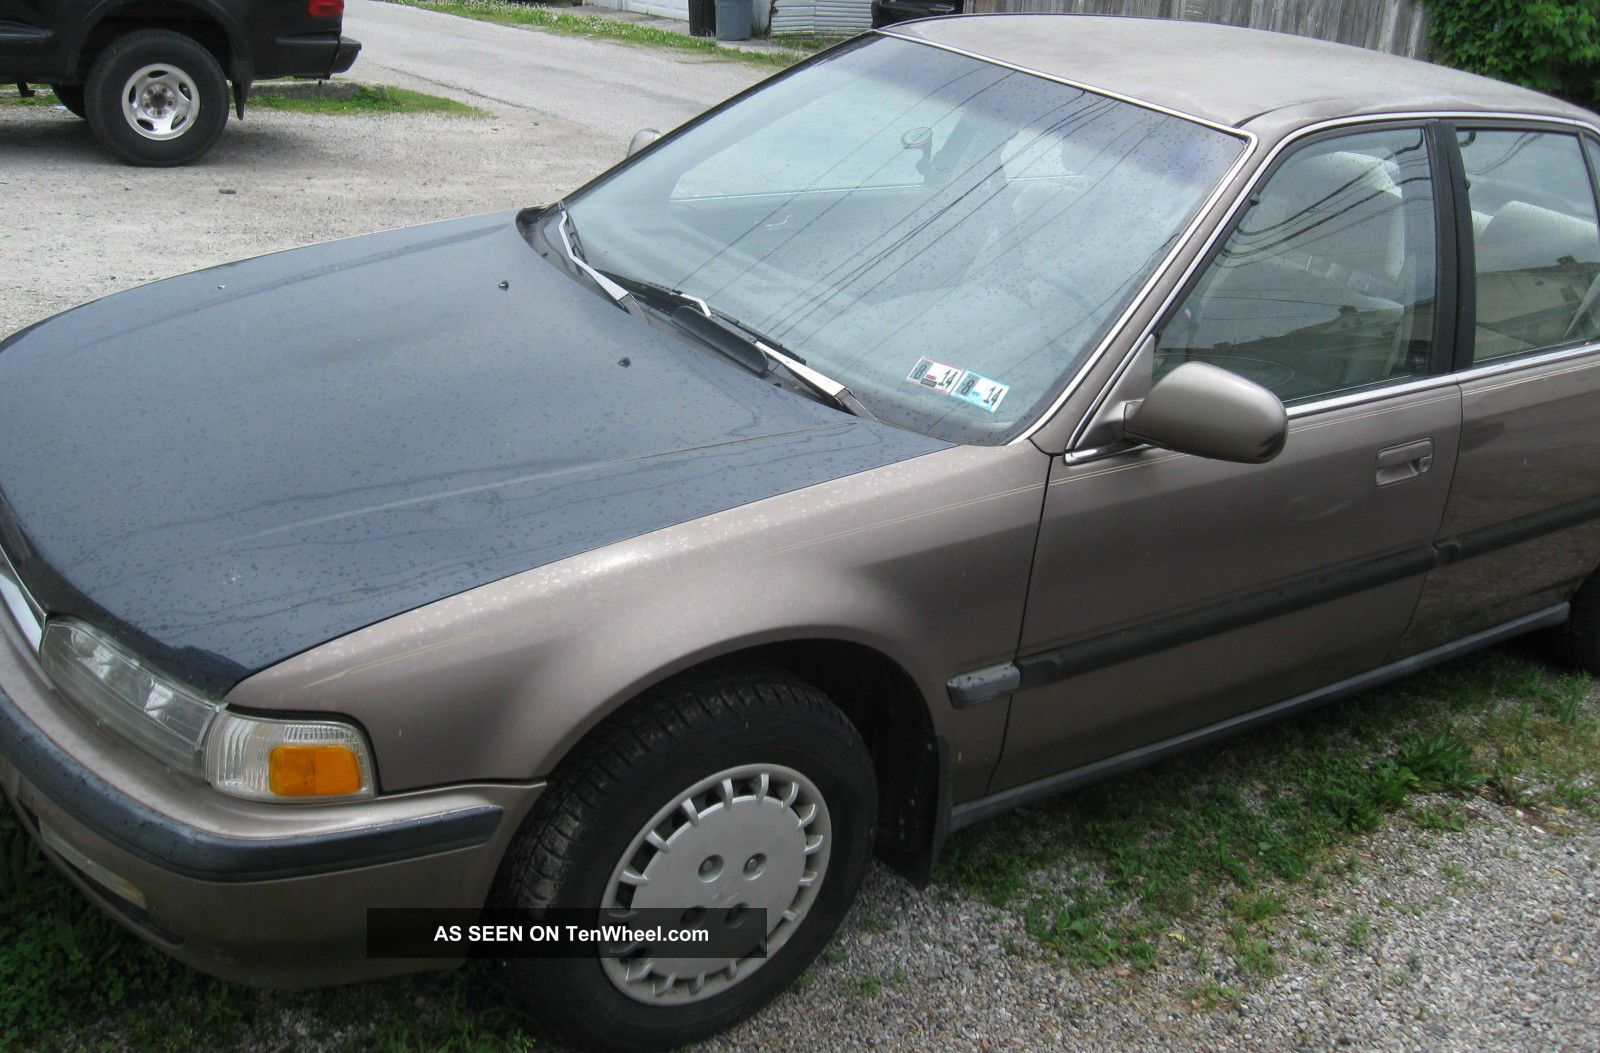 91 Honda Accord Lx 4 Door Sedan Automatic Running Needs Minor Work 165k 1991 Accord photo